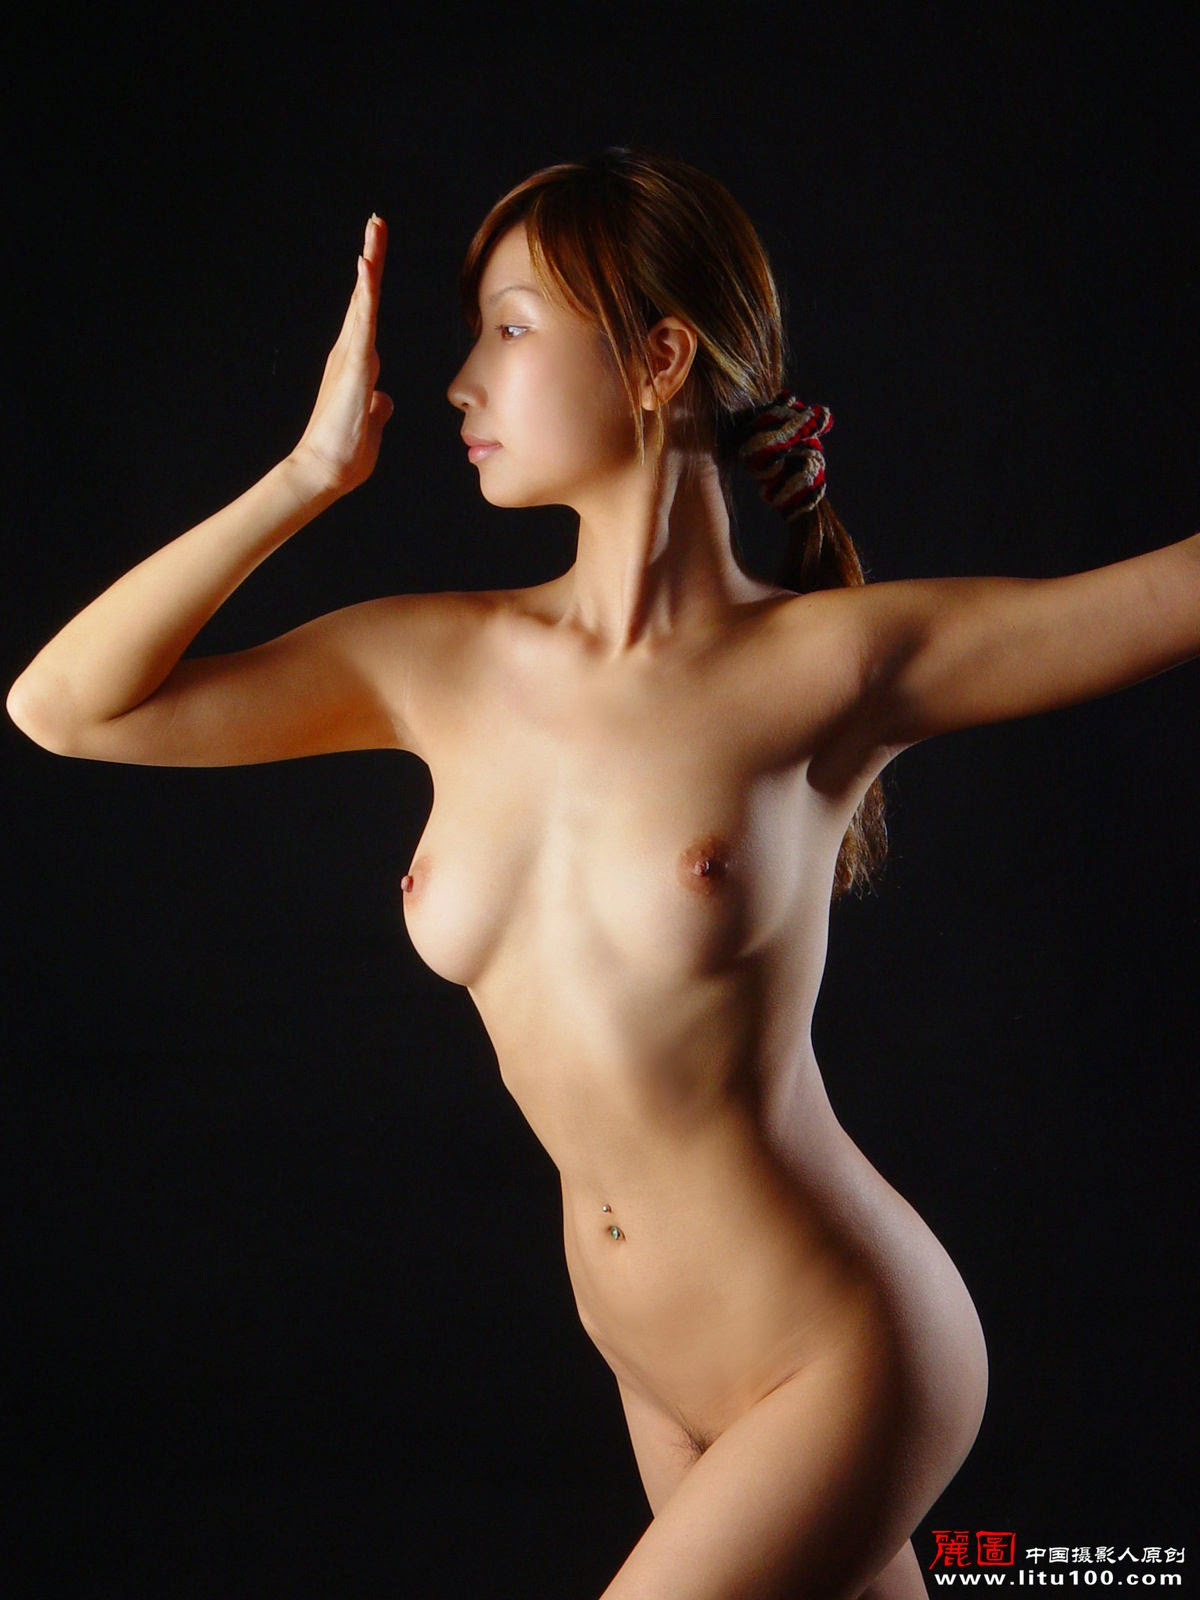 Naked Girl China